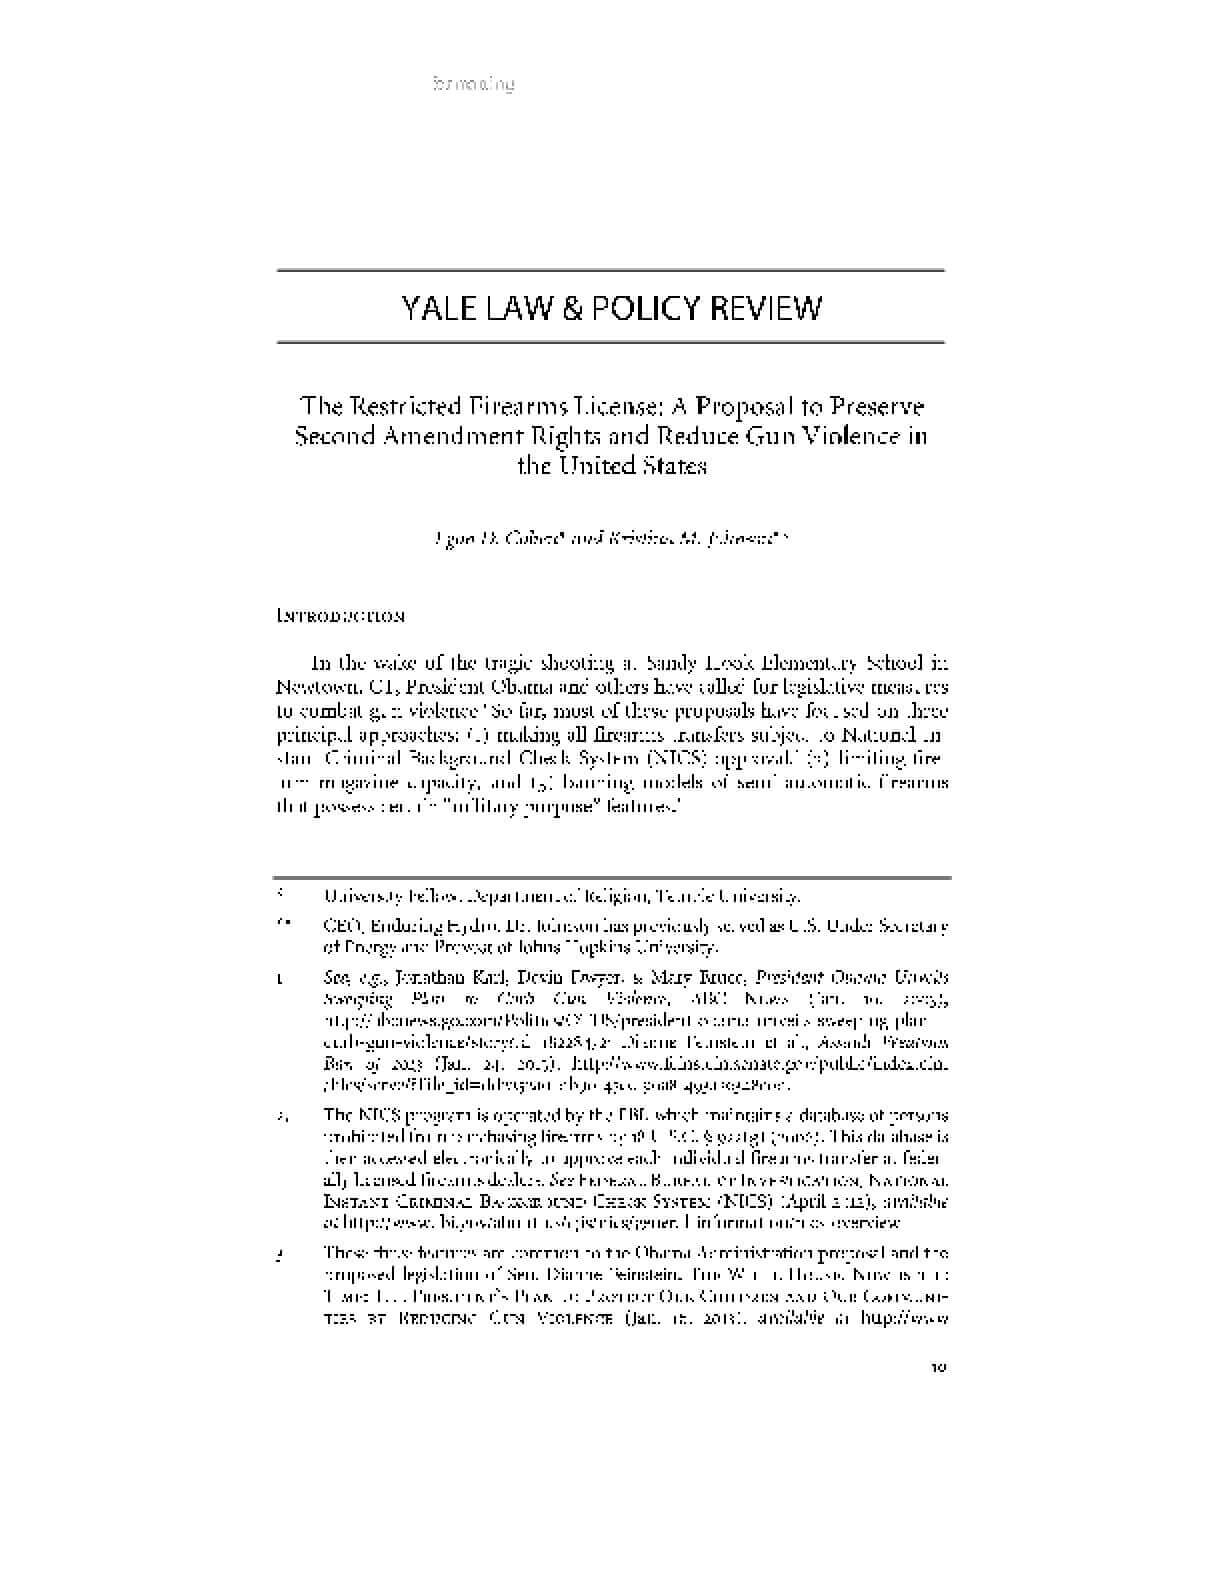 The Restricted Firearms License: A Proposal to Preserve Second Amendment Rights and Reduce Gun Violence in the United States